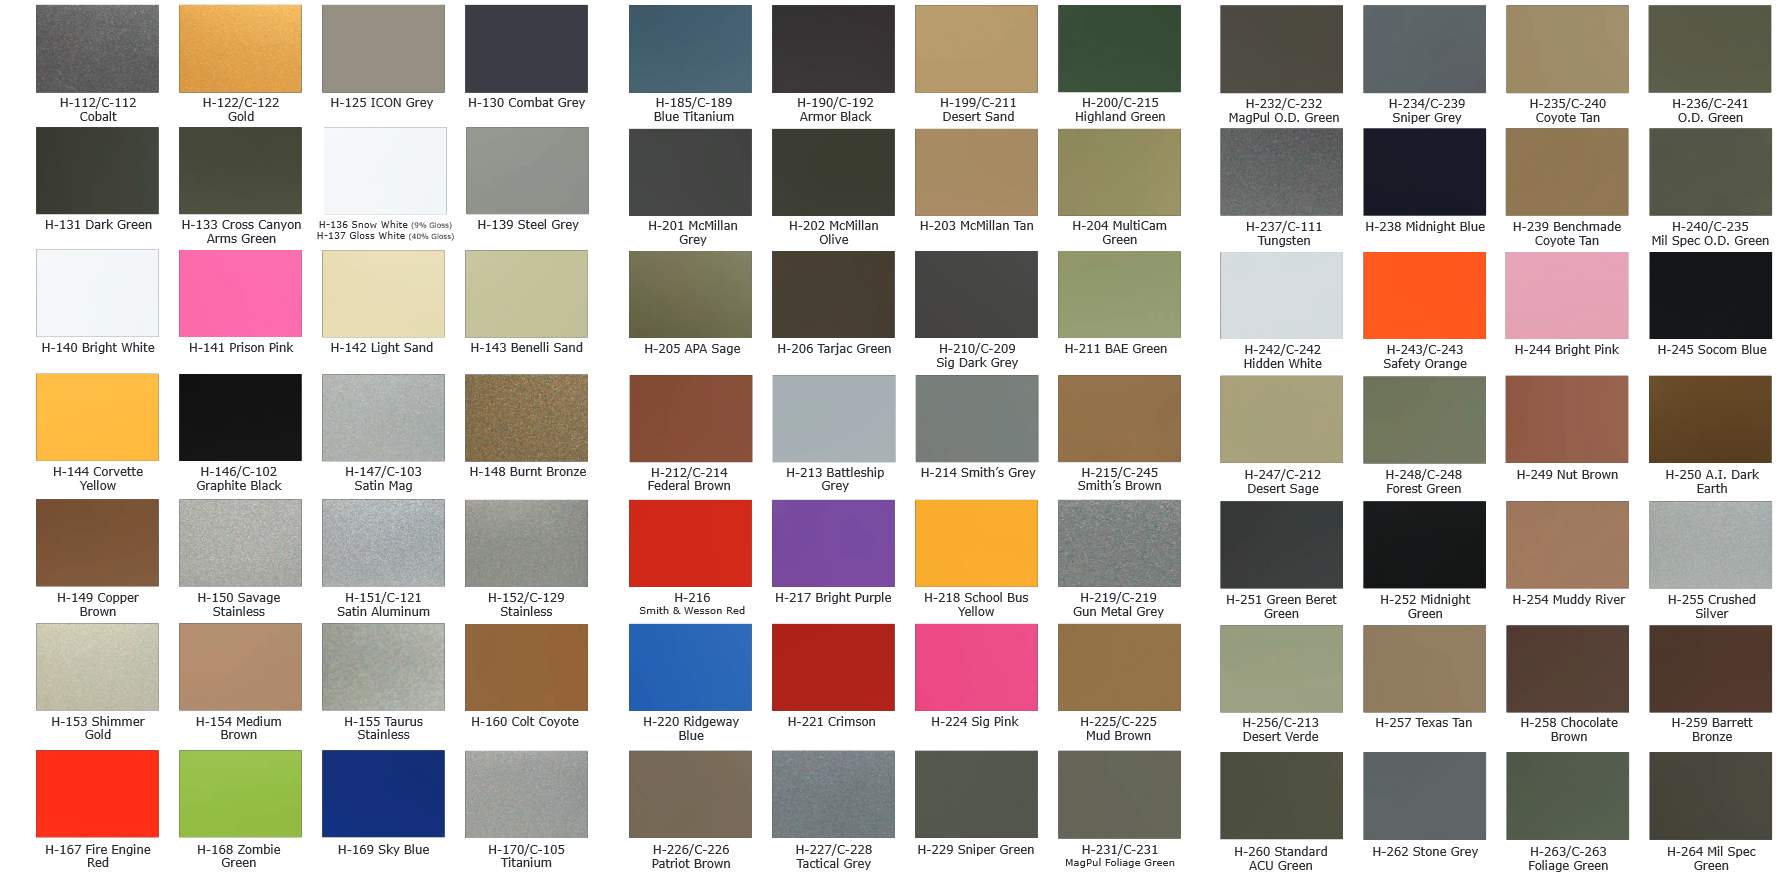 Cerakote - Multi color/camo